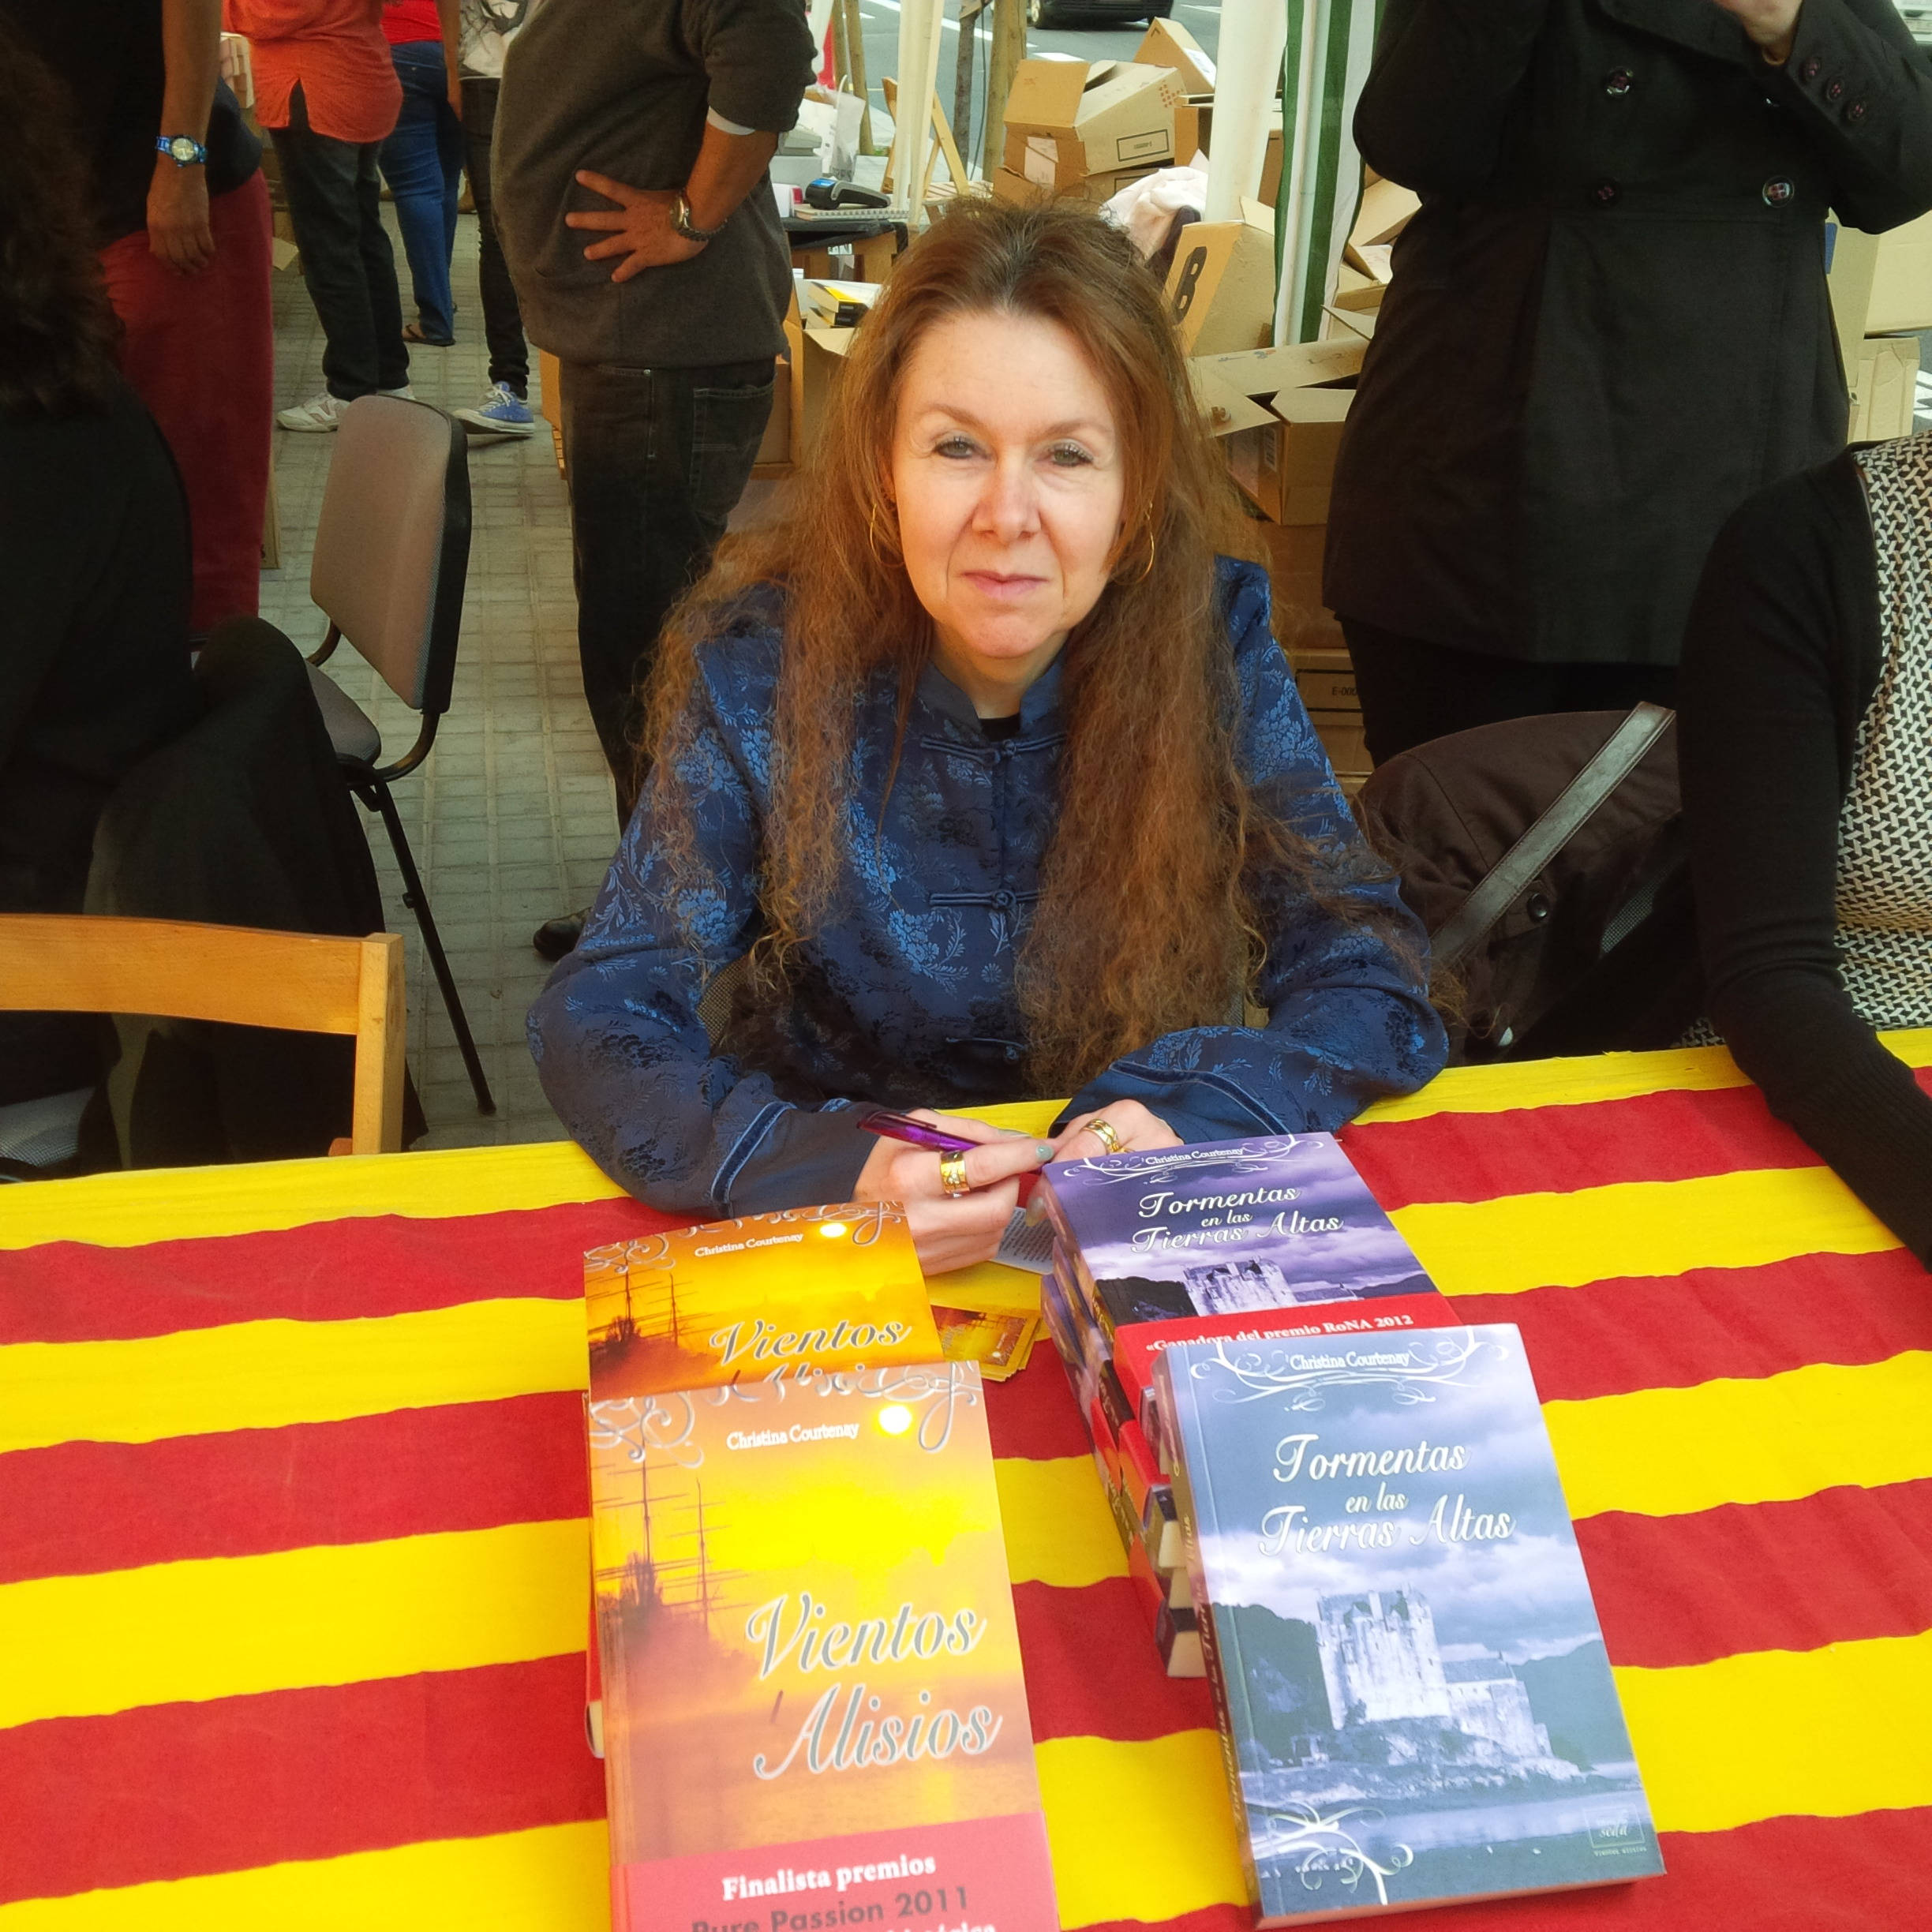 image showing Me at the Libreria Maite Stand